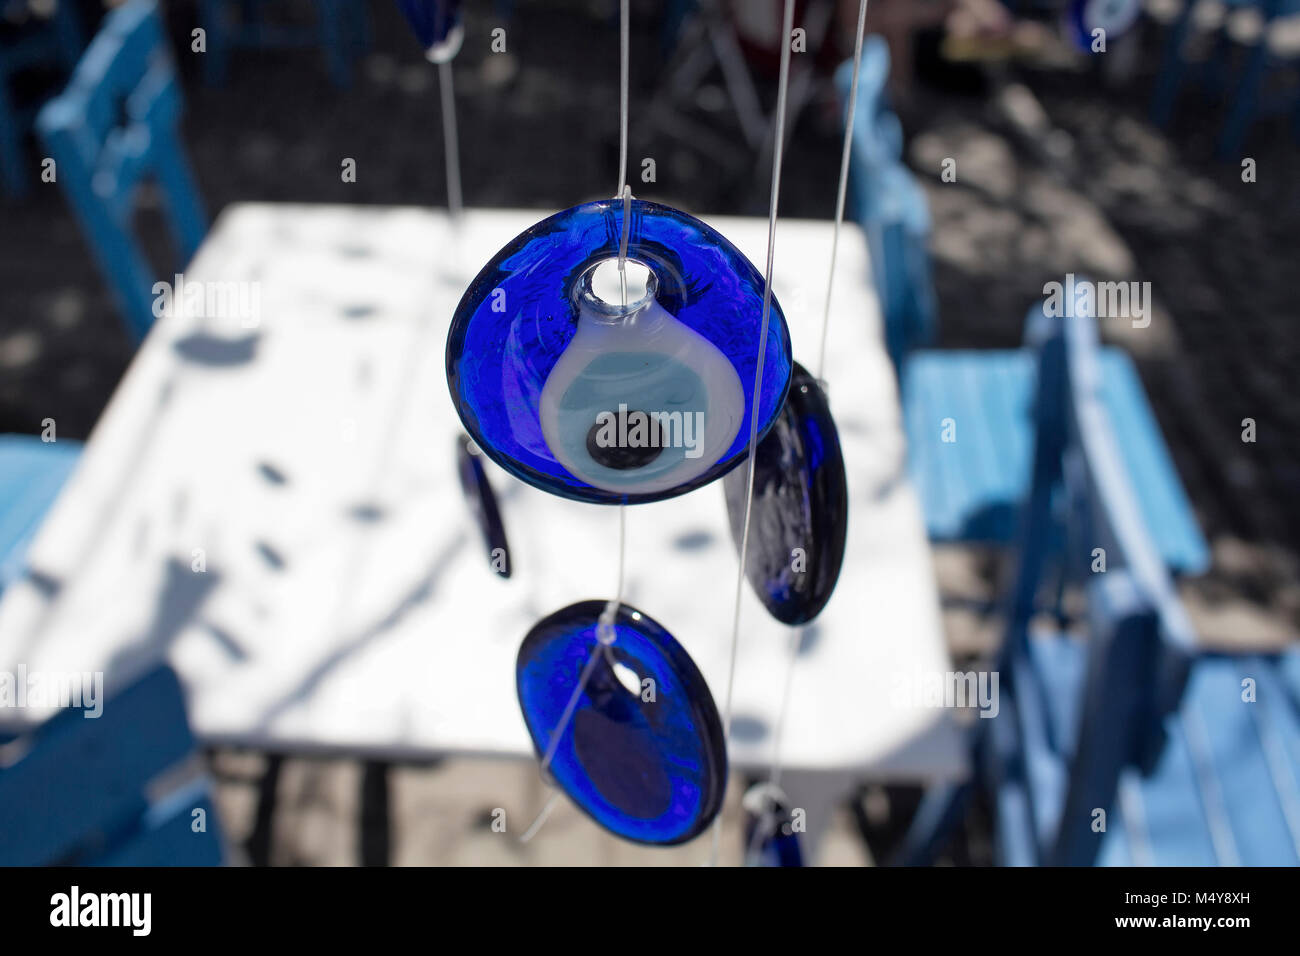 Hung, decorative evil eyes with blue, wooden chairs and white table in Cunda (Alibey) island. - Stock Image